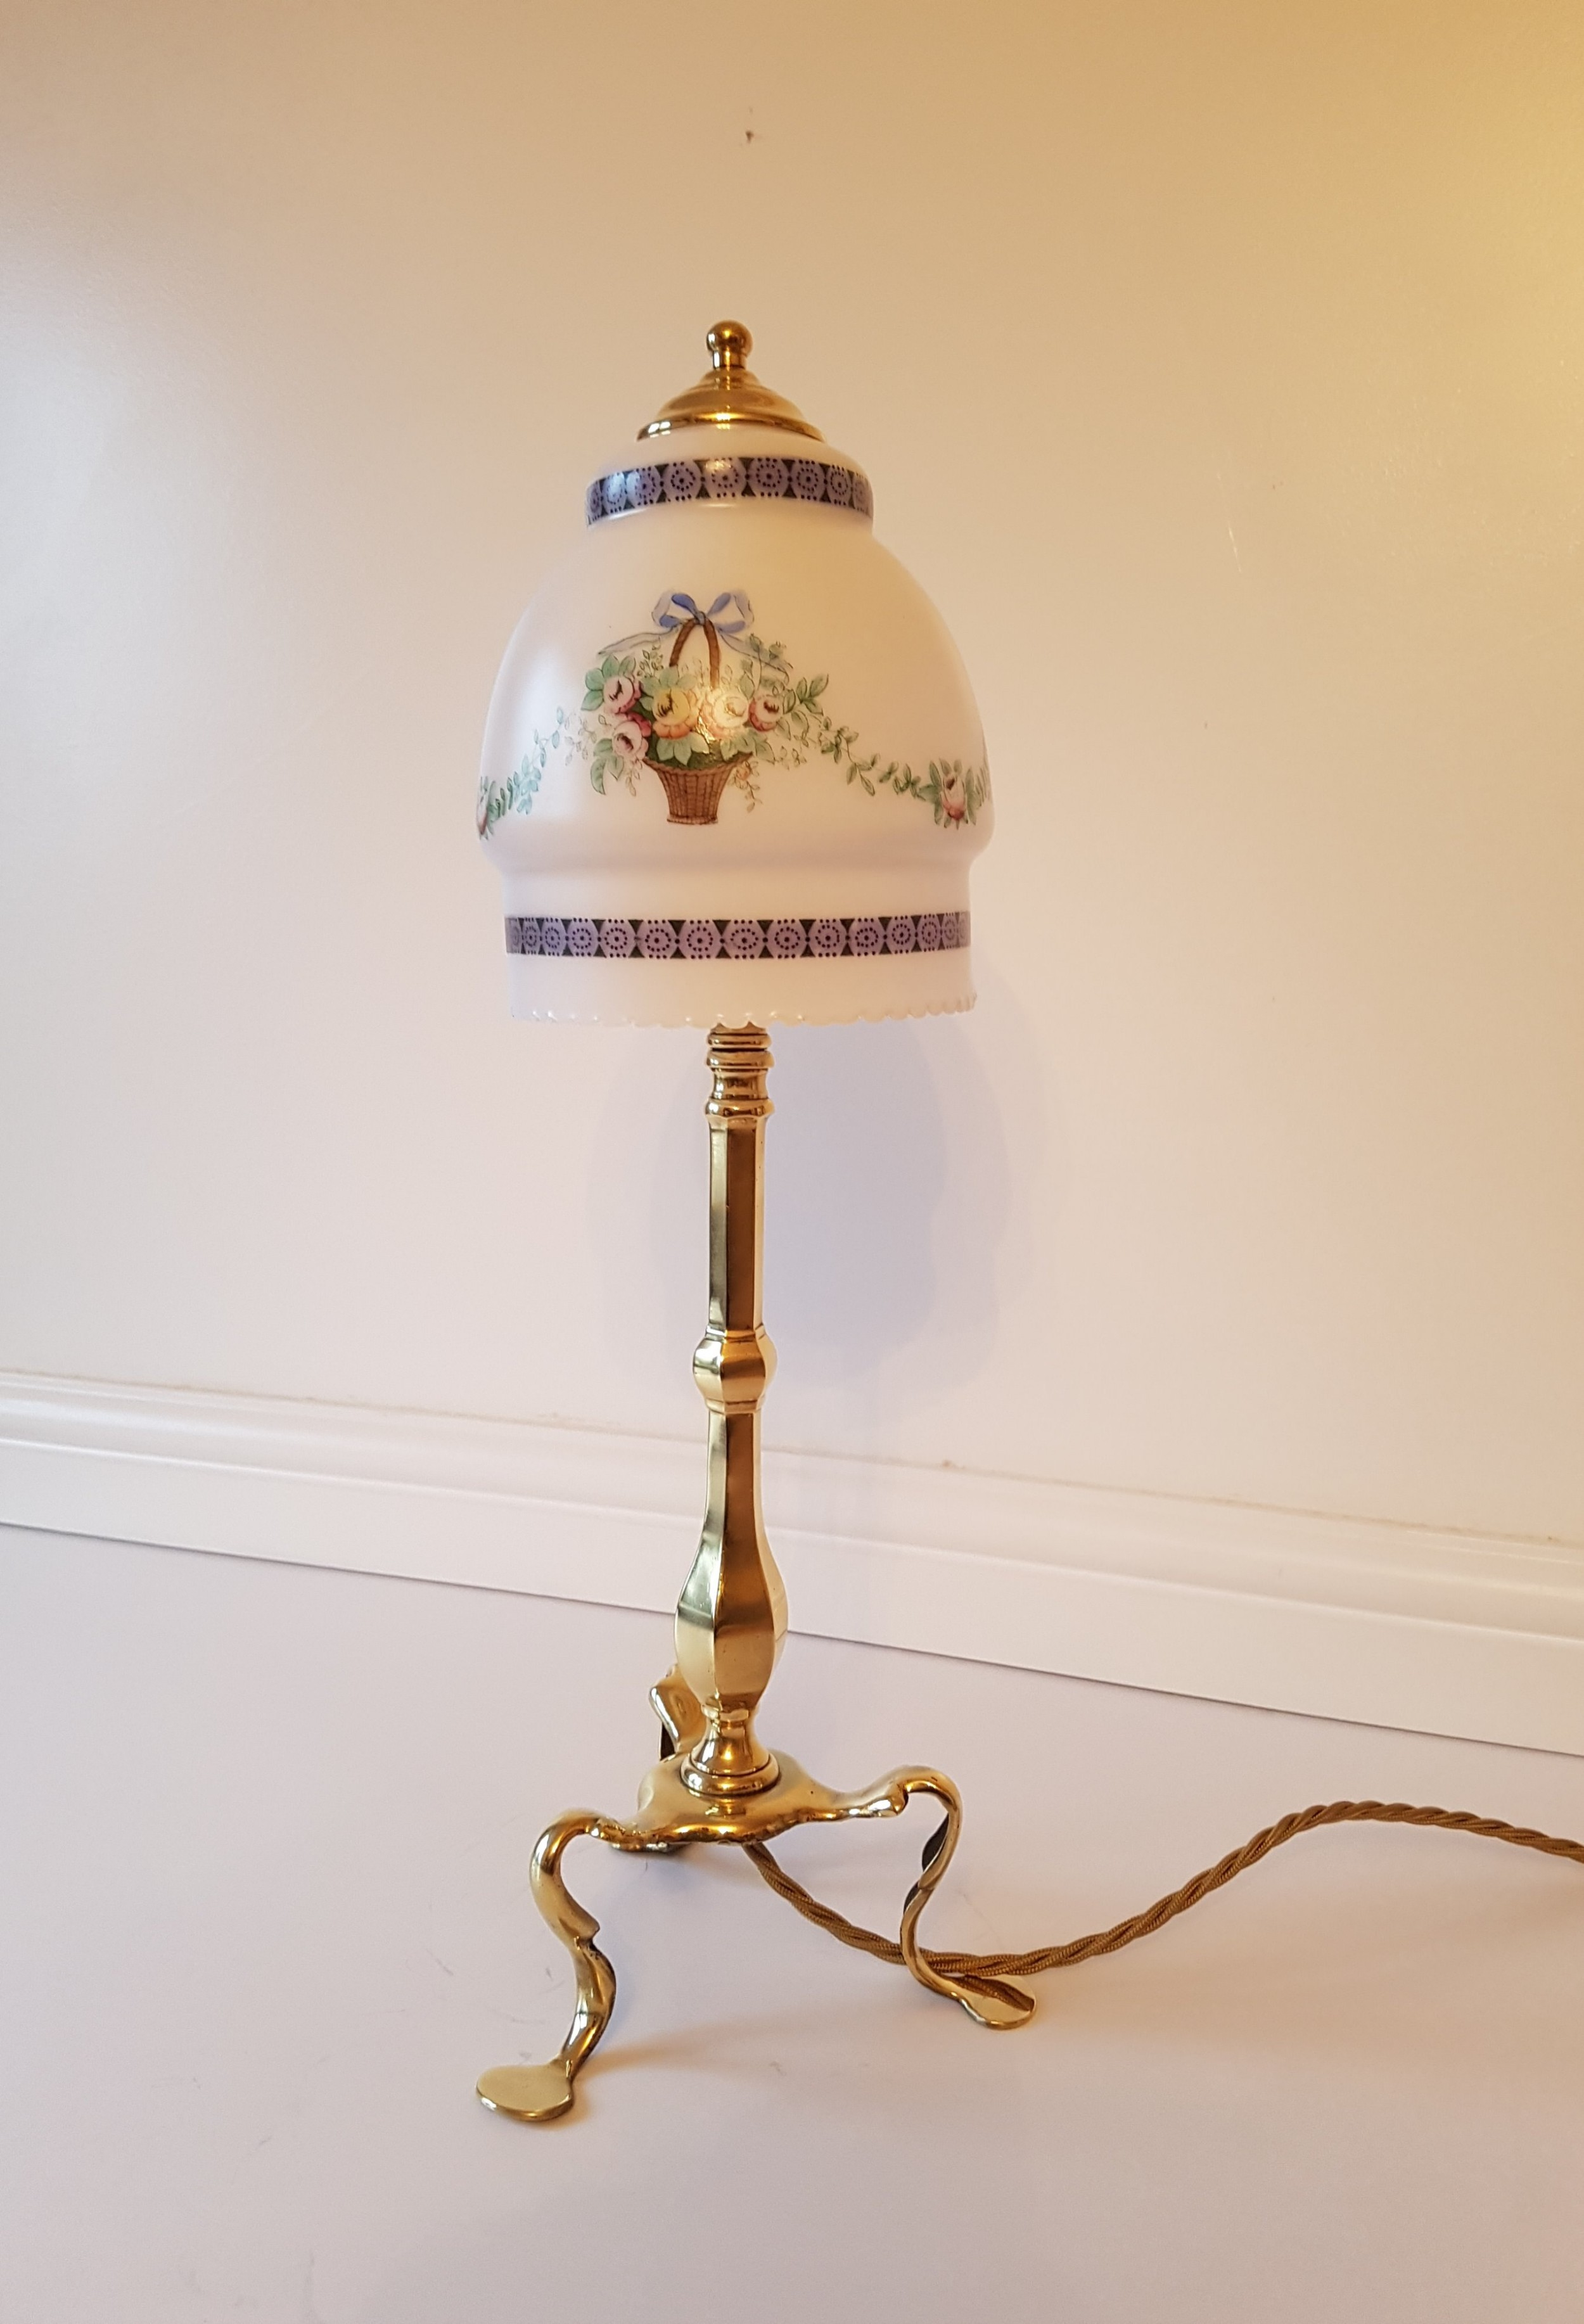 c1910 brass pullman table lamp no 2 of a near pair rewired